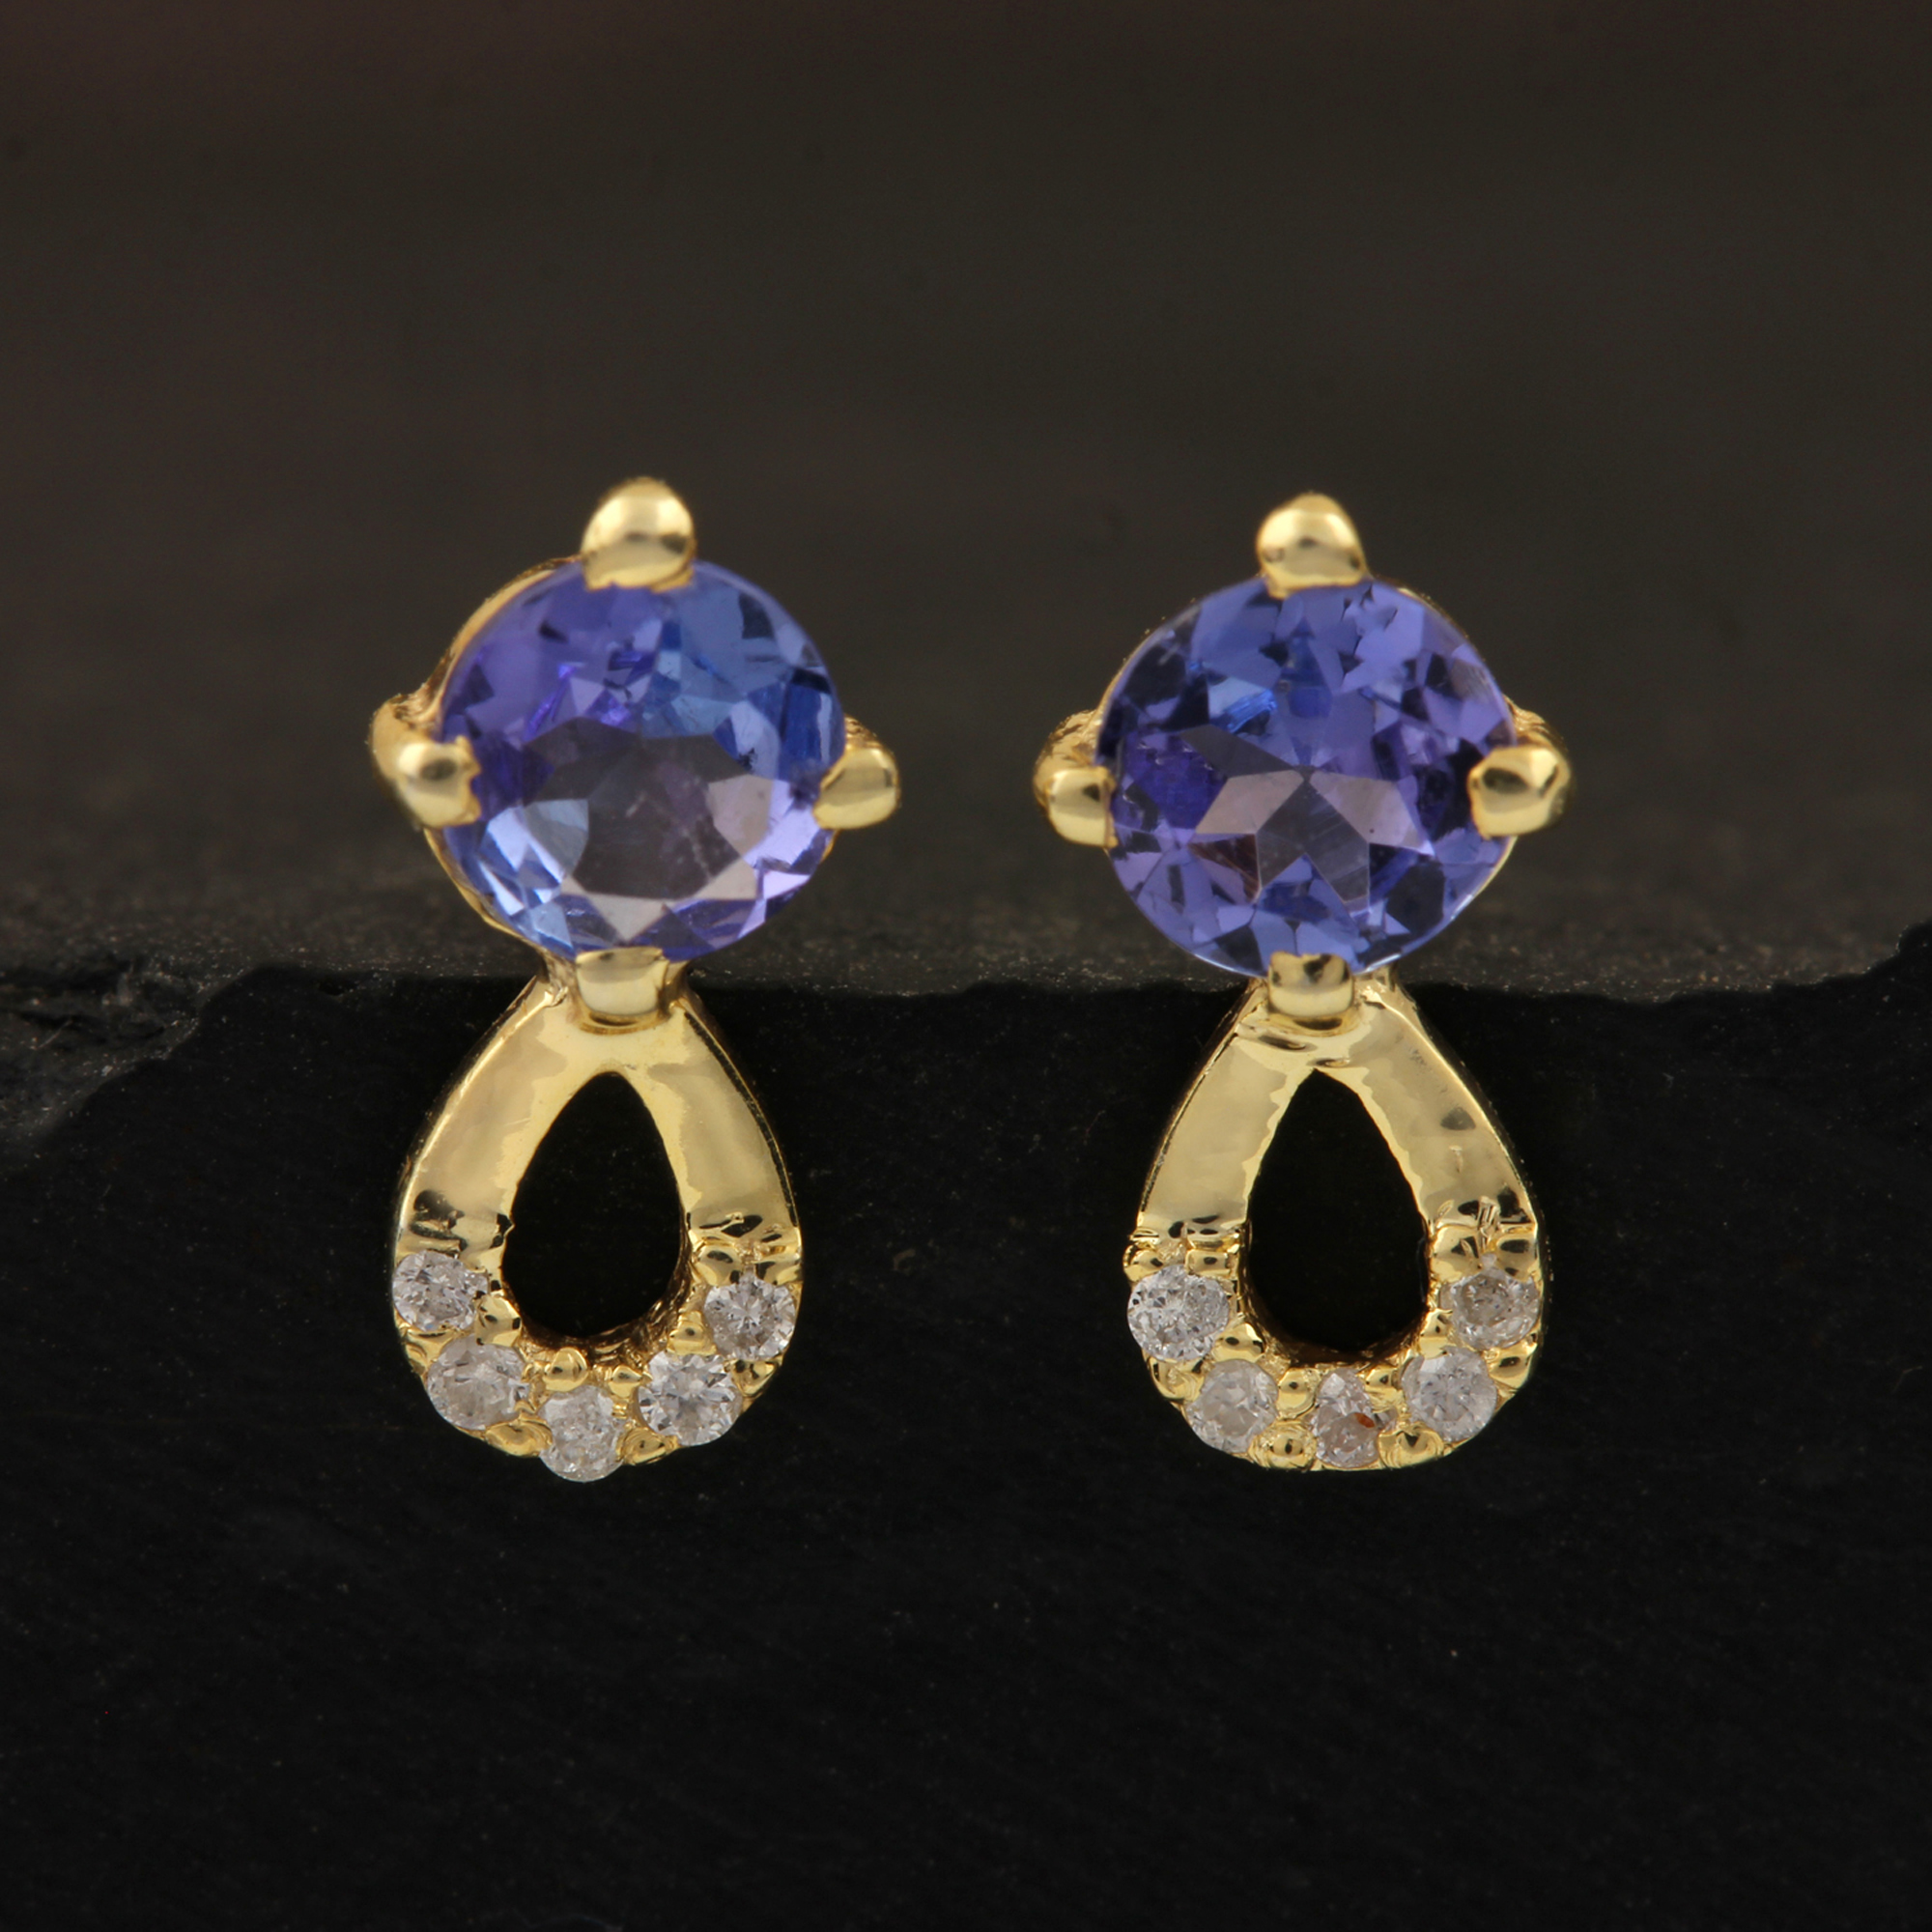 Solid 14k Gold Stud Earrings Adorned With Diamond &Tanzanite